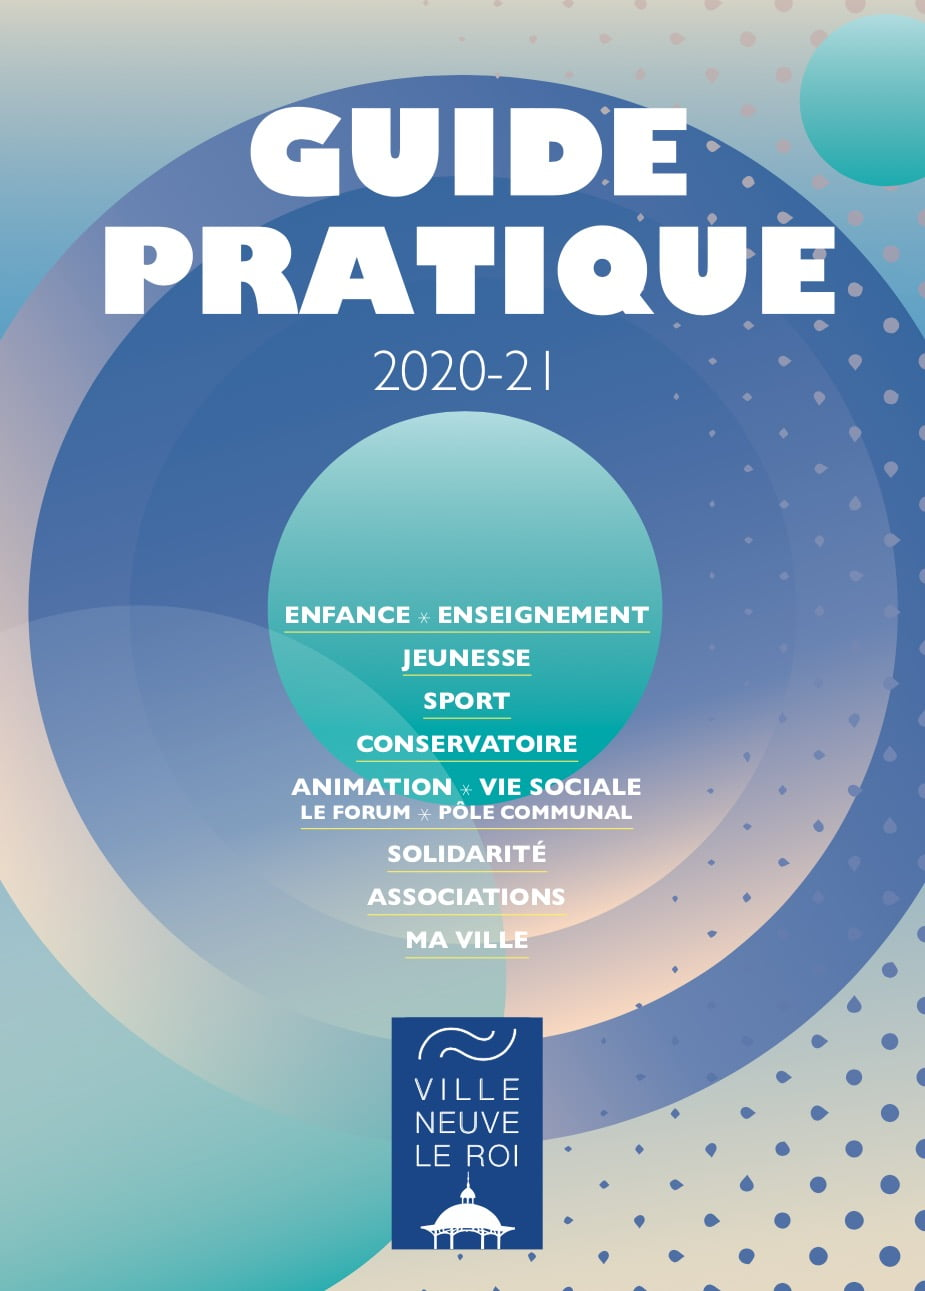 Guide pratique 2020/21